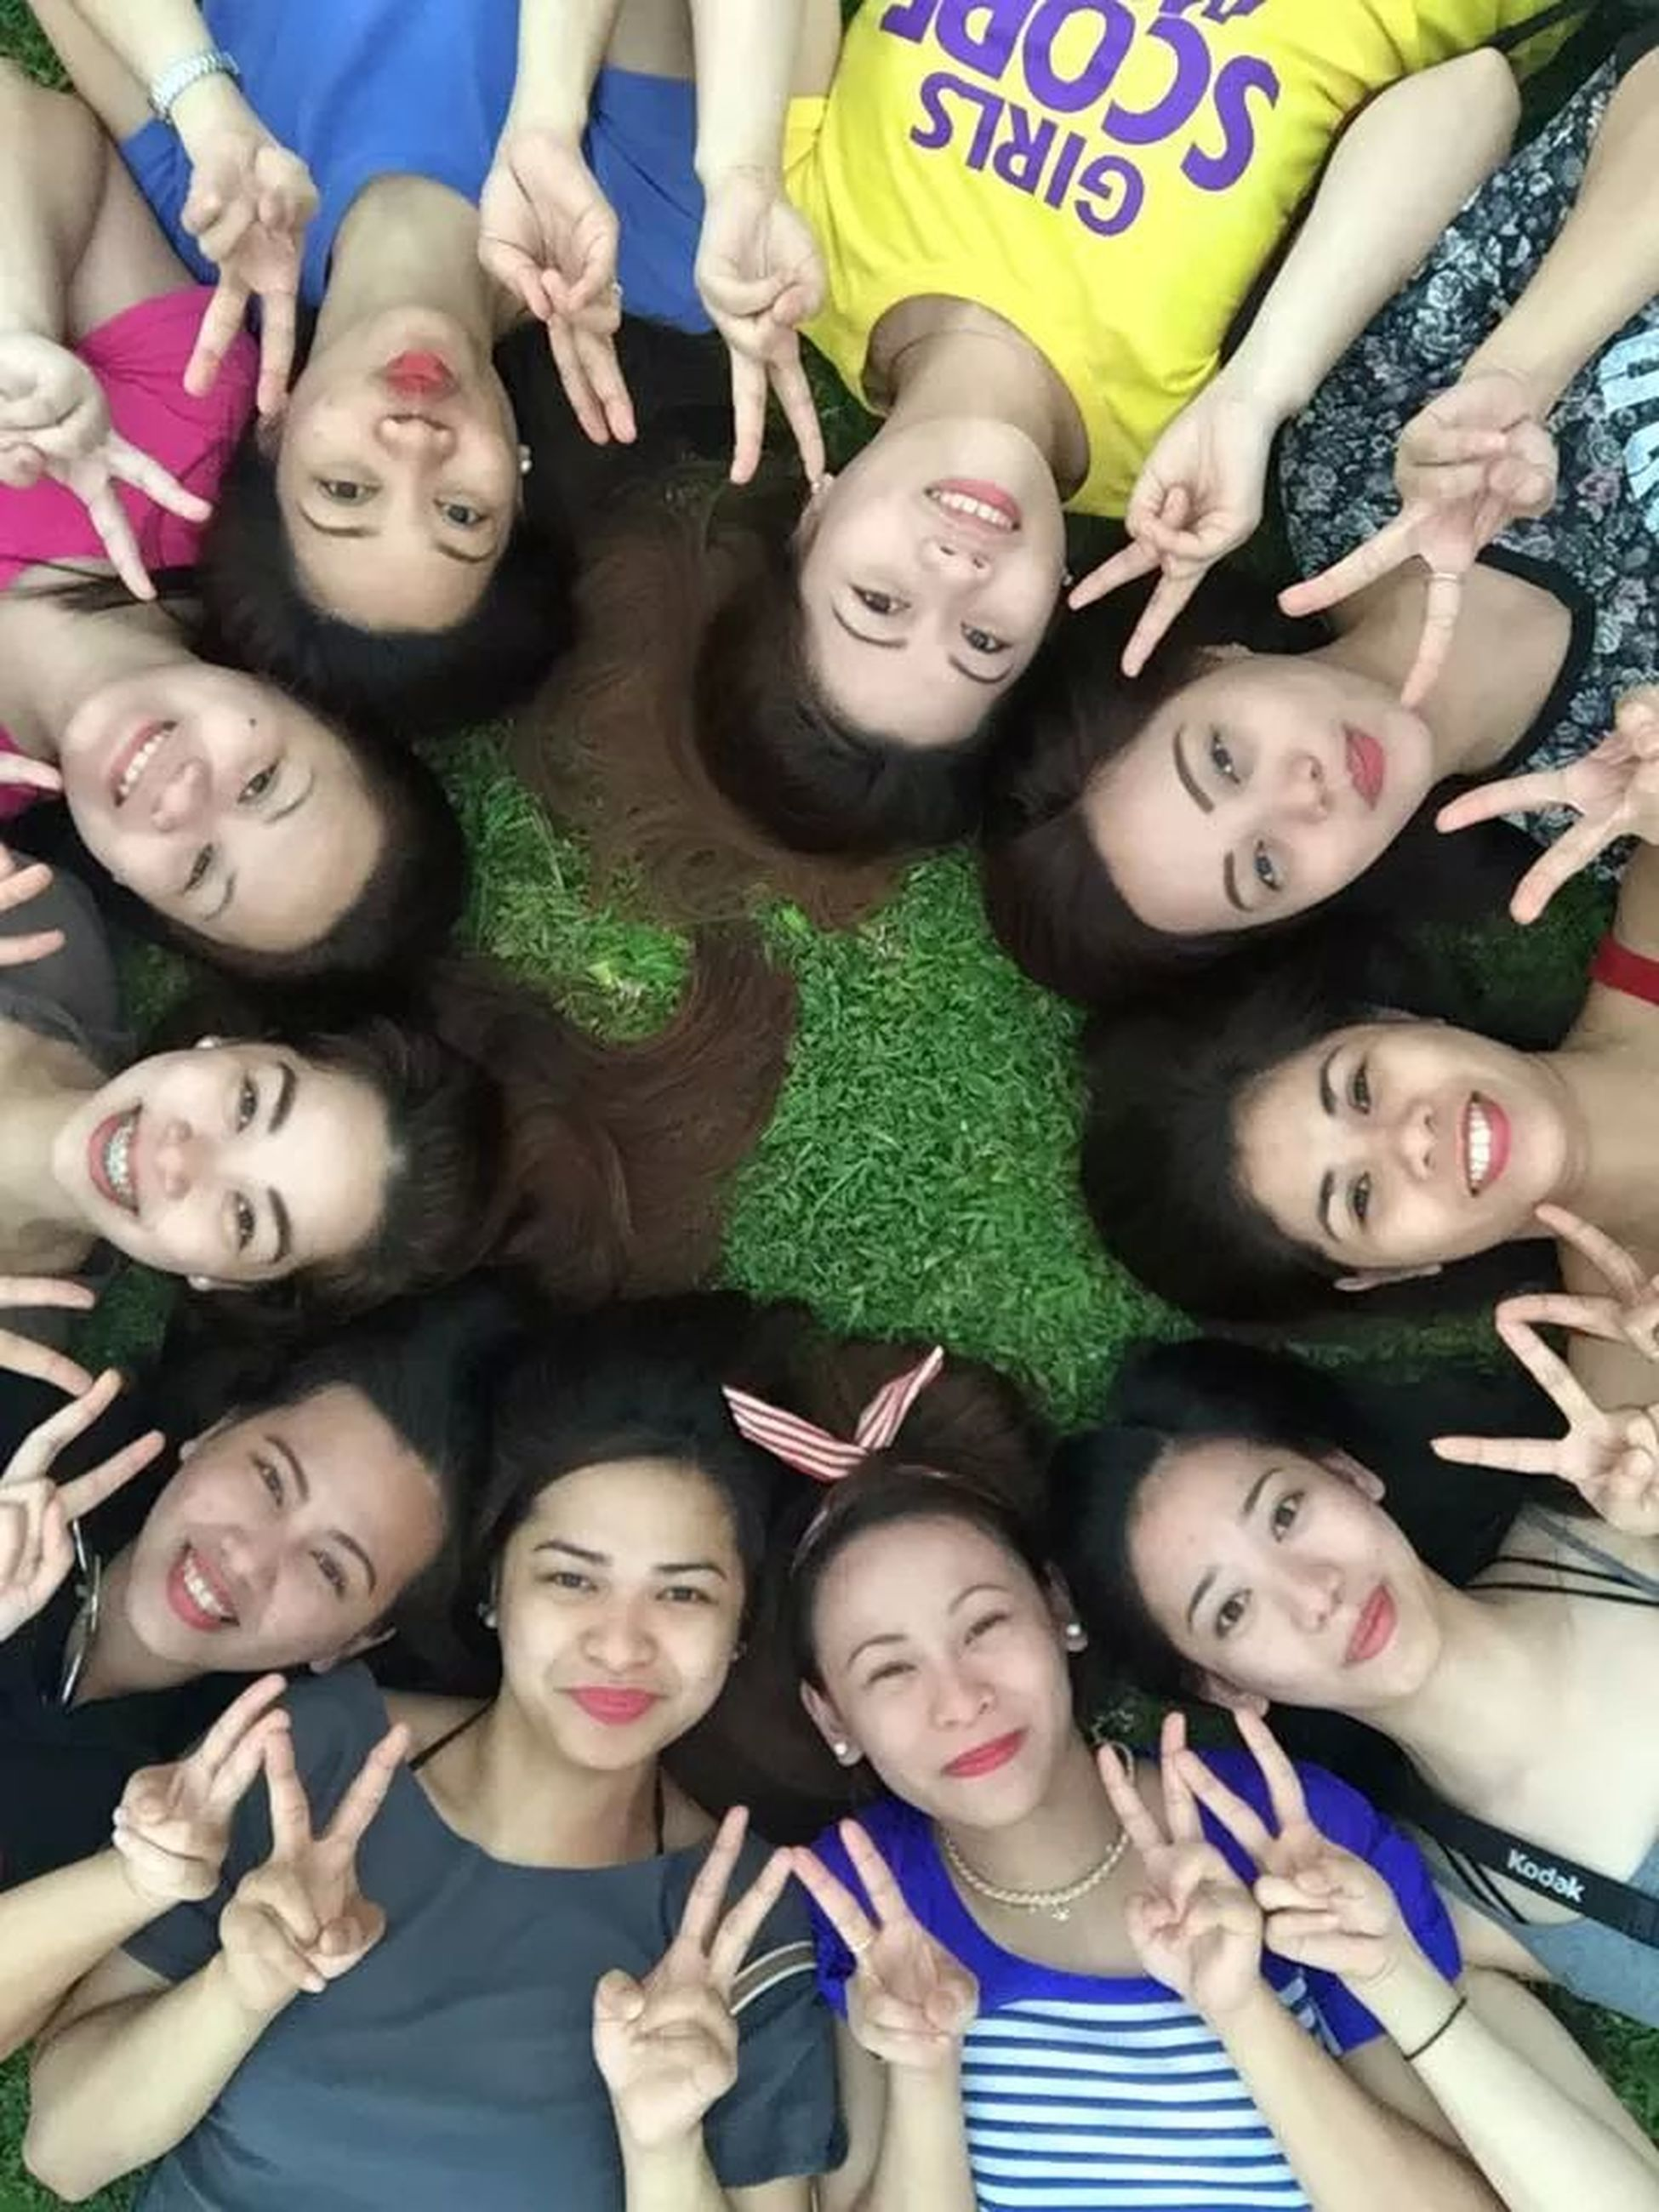 togetherness, childhood, bonding, indoors, happiness, person, lifestyles, smiling, leisure activity, love, girls, high angle view, family, fun, front view, sibling, friendship, cute